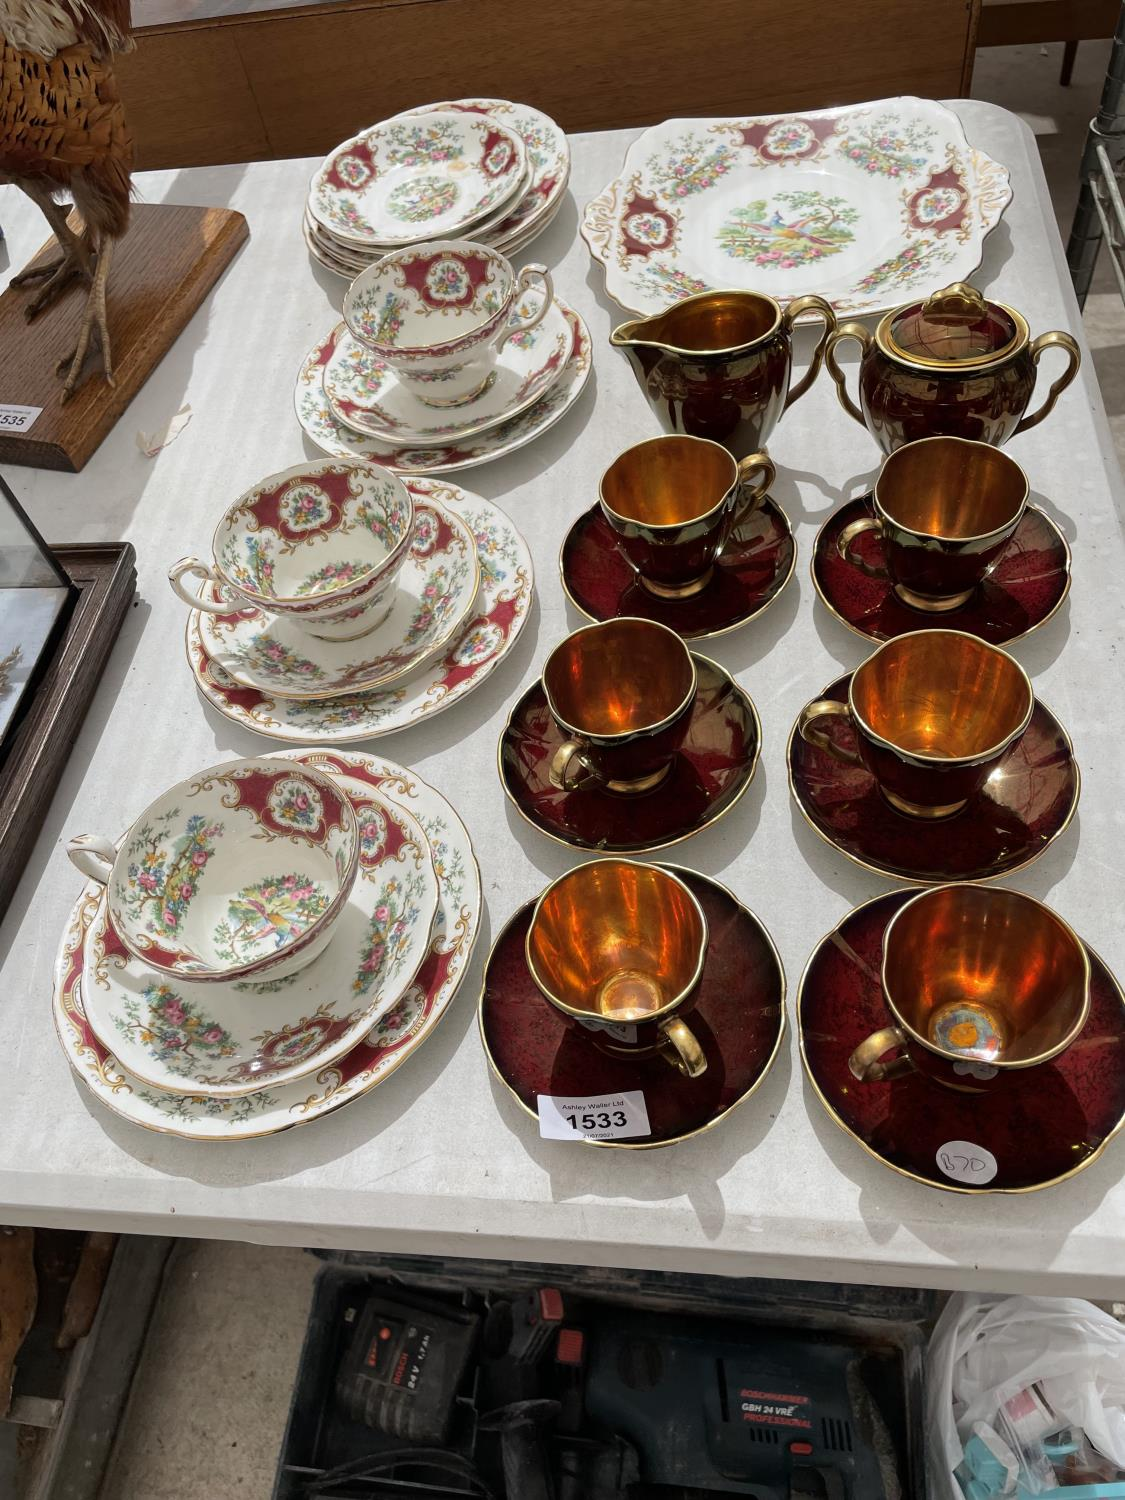 AN ASSORTMENT OF CERAMIC WARE TO INCLUDE A CARLTON WARE COFFEE SERVICE SET AND FLORAL TRIOS ETC - Image 2 of 10